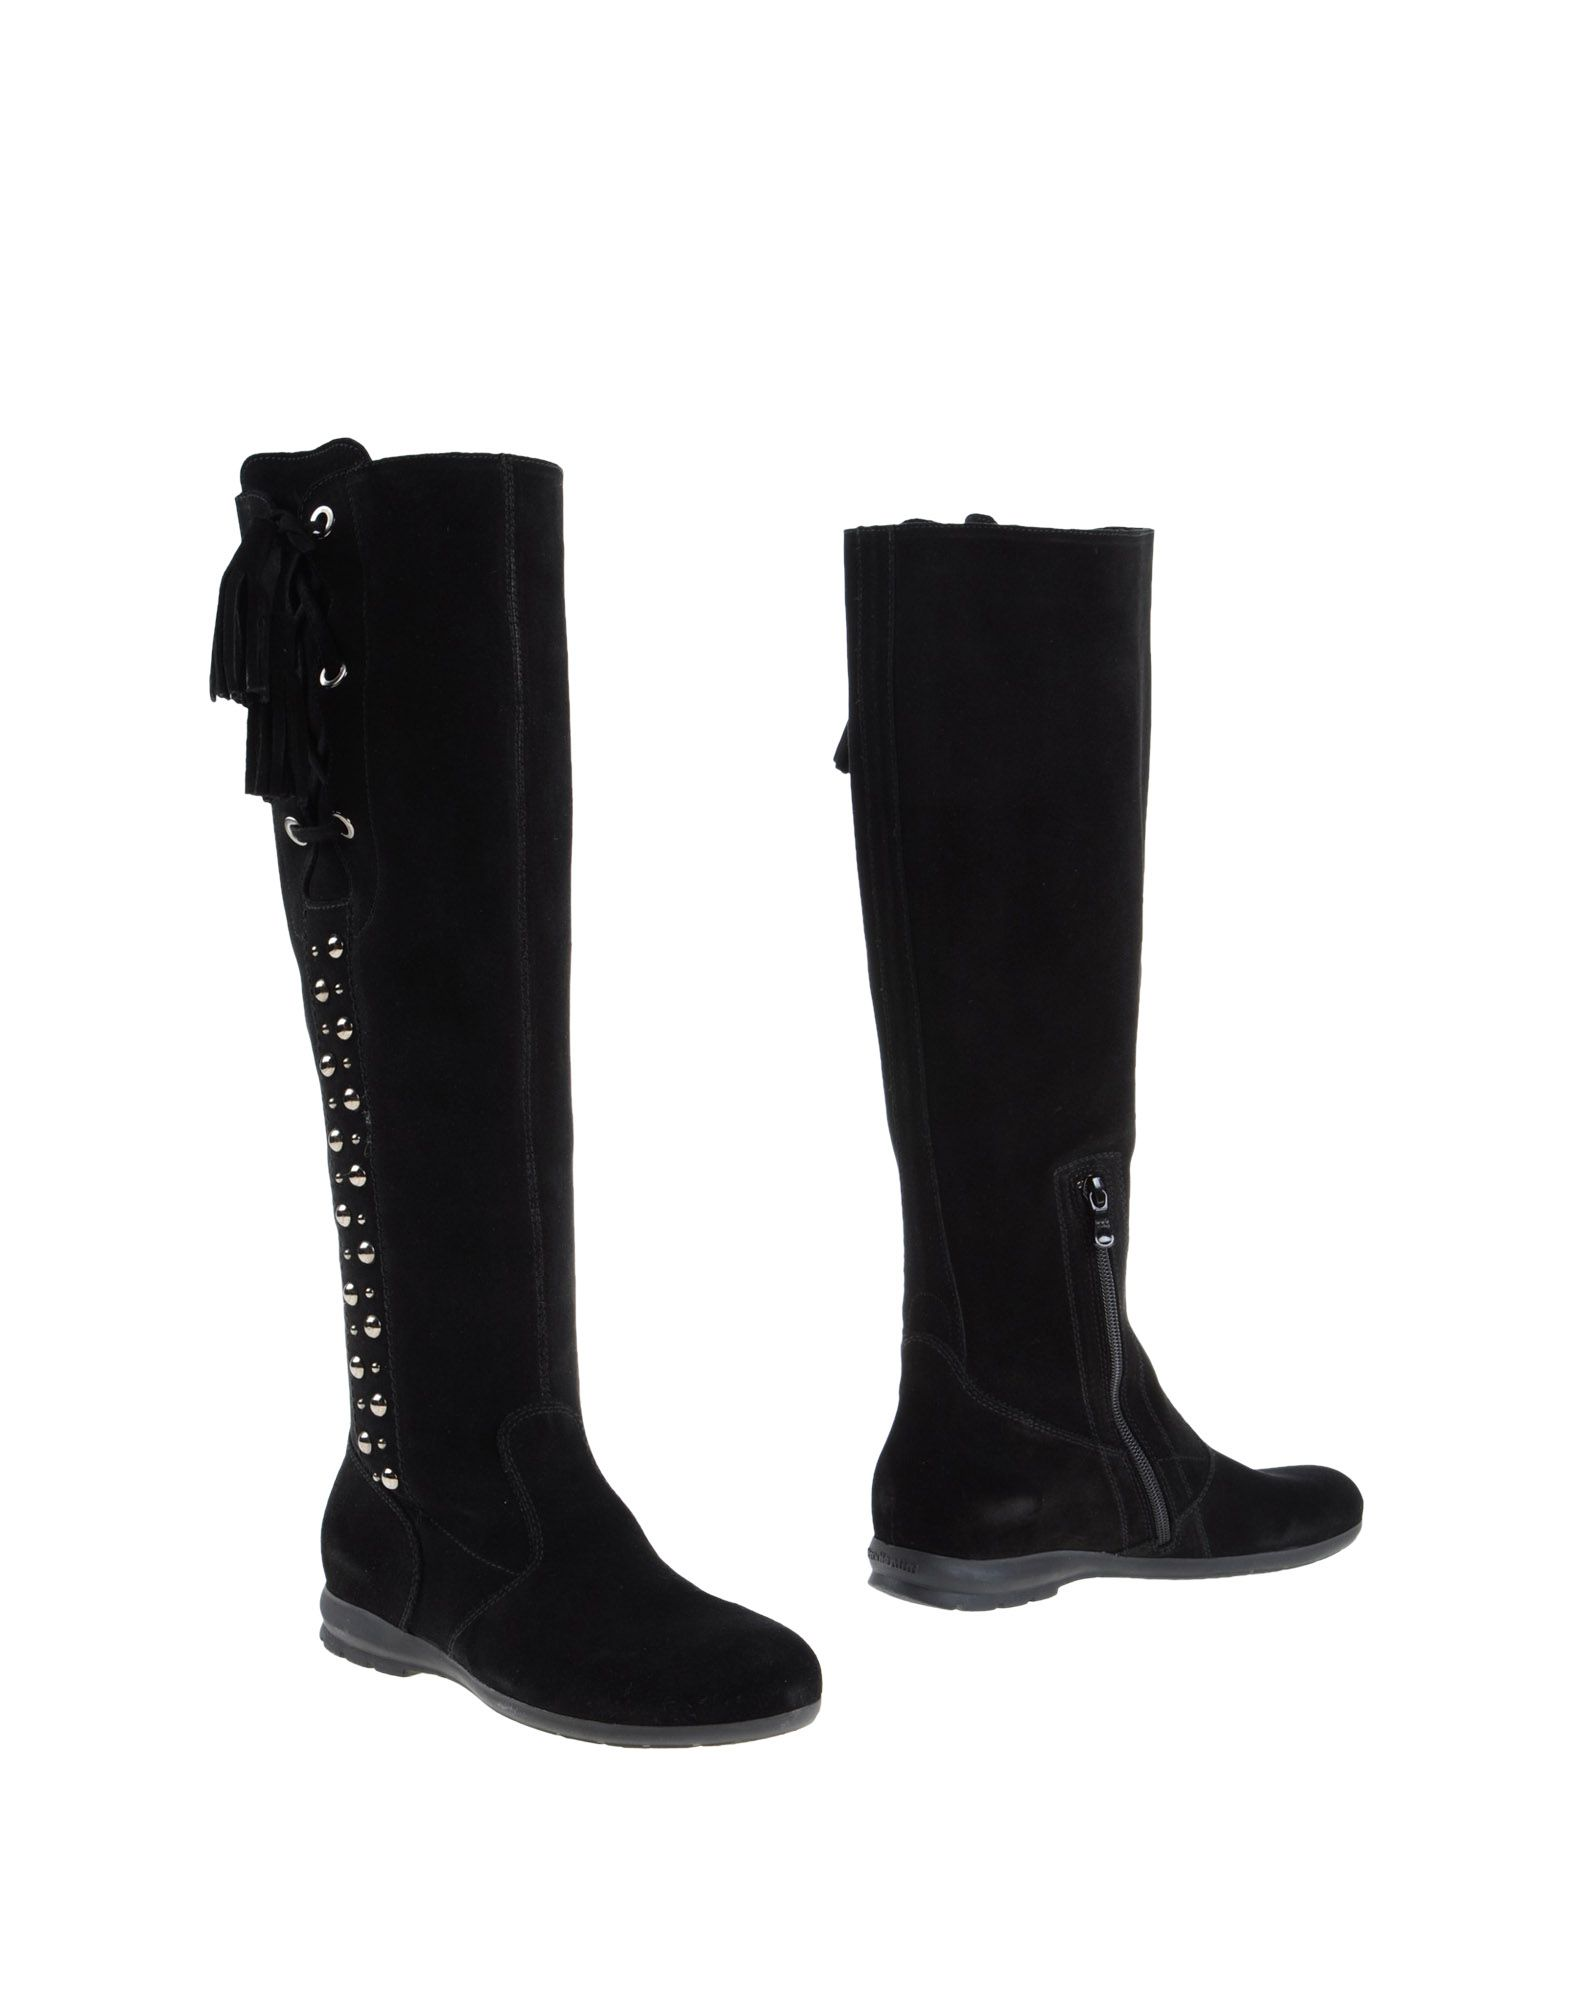 Ng Nero Giardini Boots - Women Ng Nero Giardini Boots - online on  Canada - Boots 44895398UF c1bff5